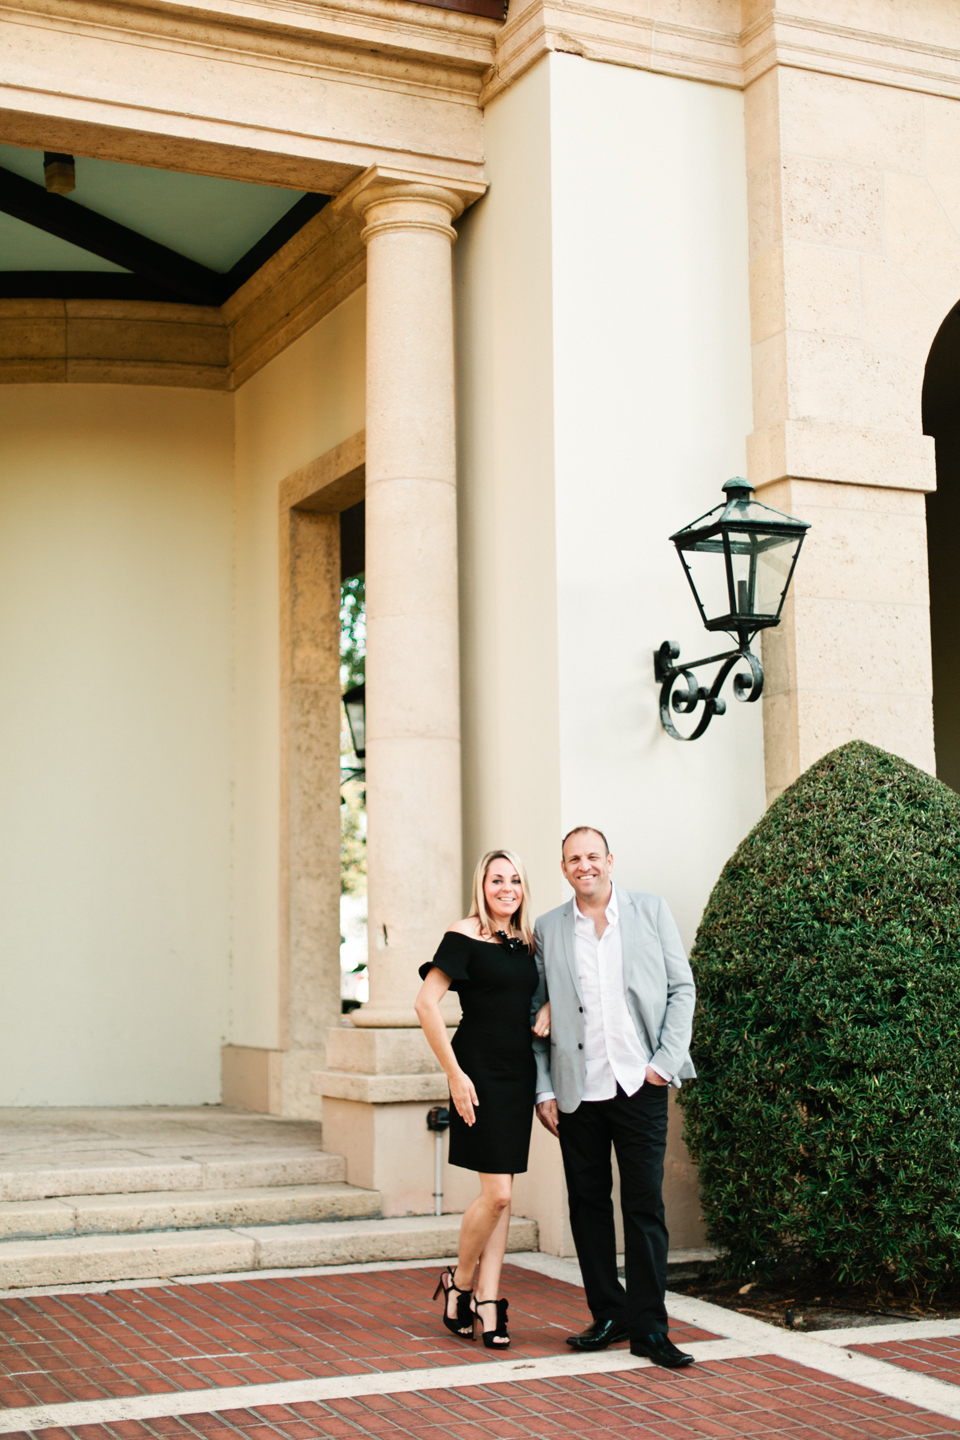 Picture of a couple standing in front of the Museum of Fine Arts downtown St. Pete.  The woman is wearing a short black dress with ruffle sleeves.  The man is wearing dress pants and a sportscoat.